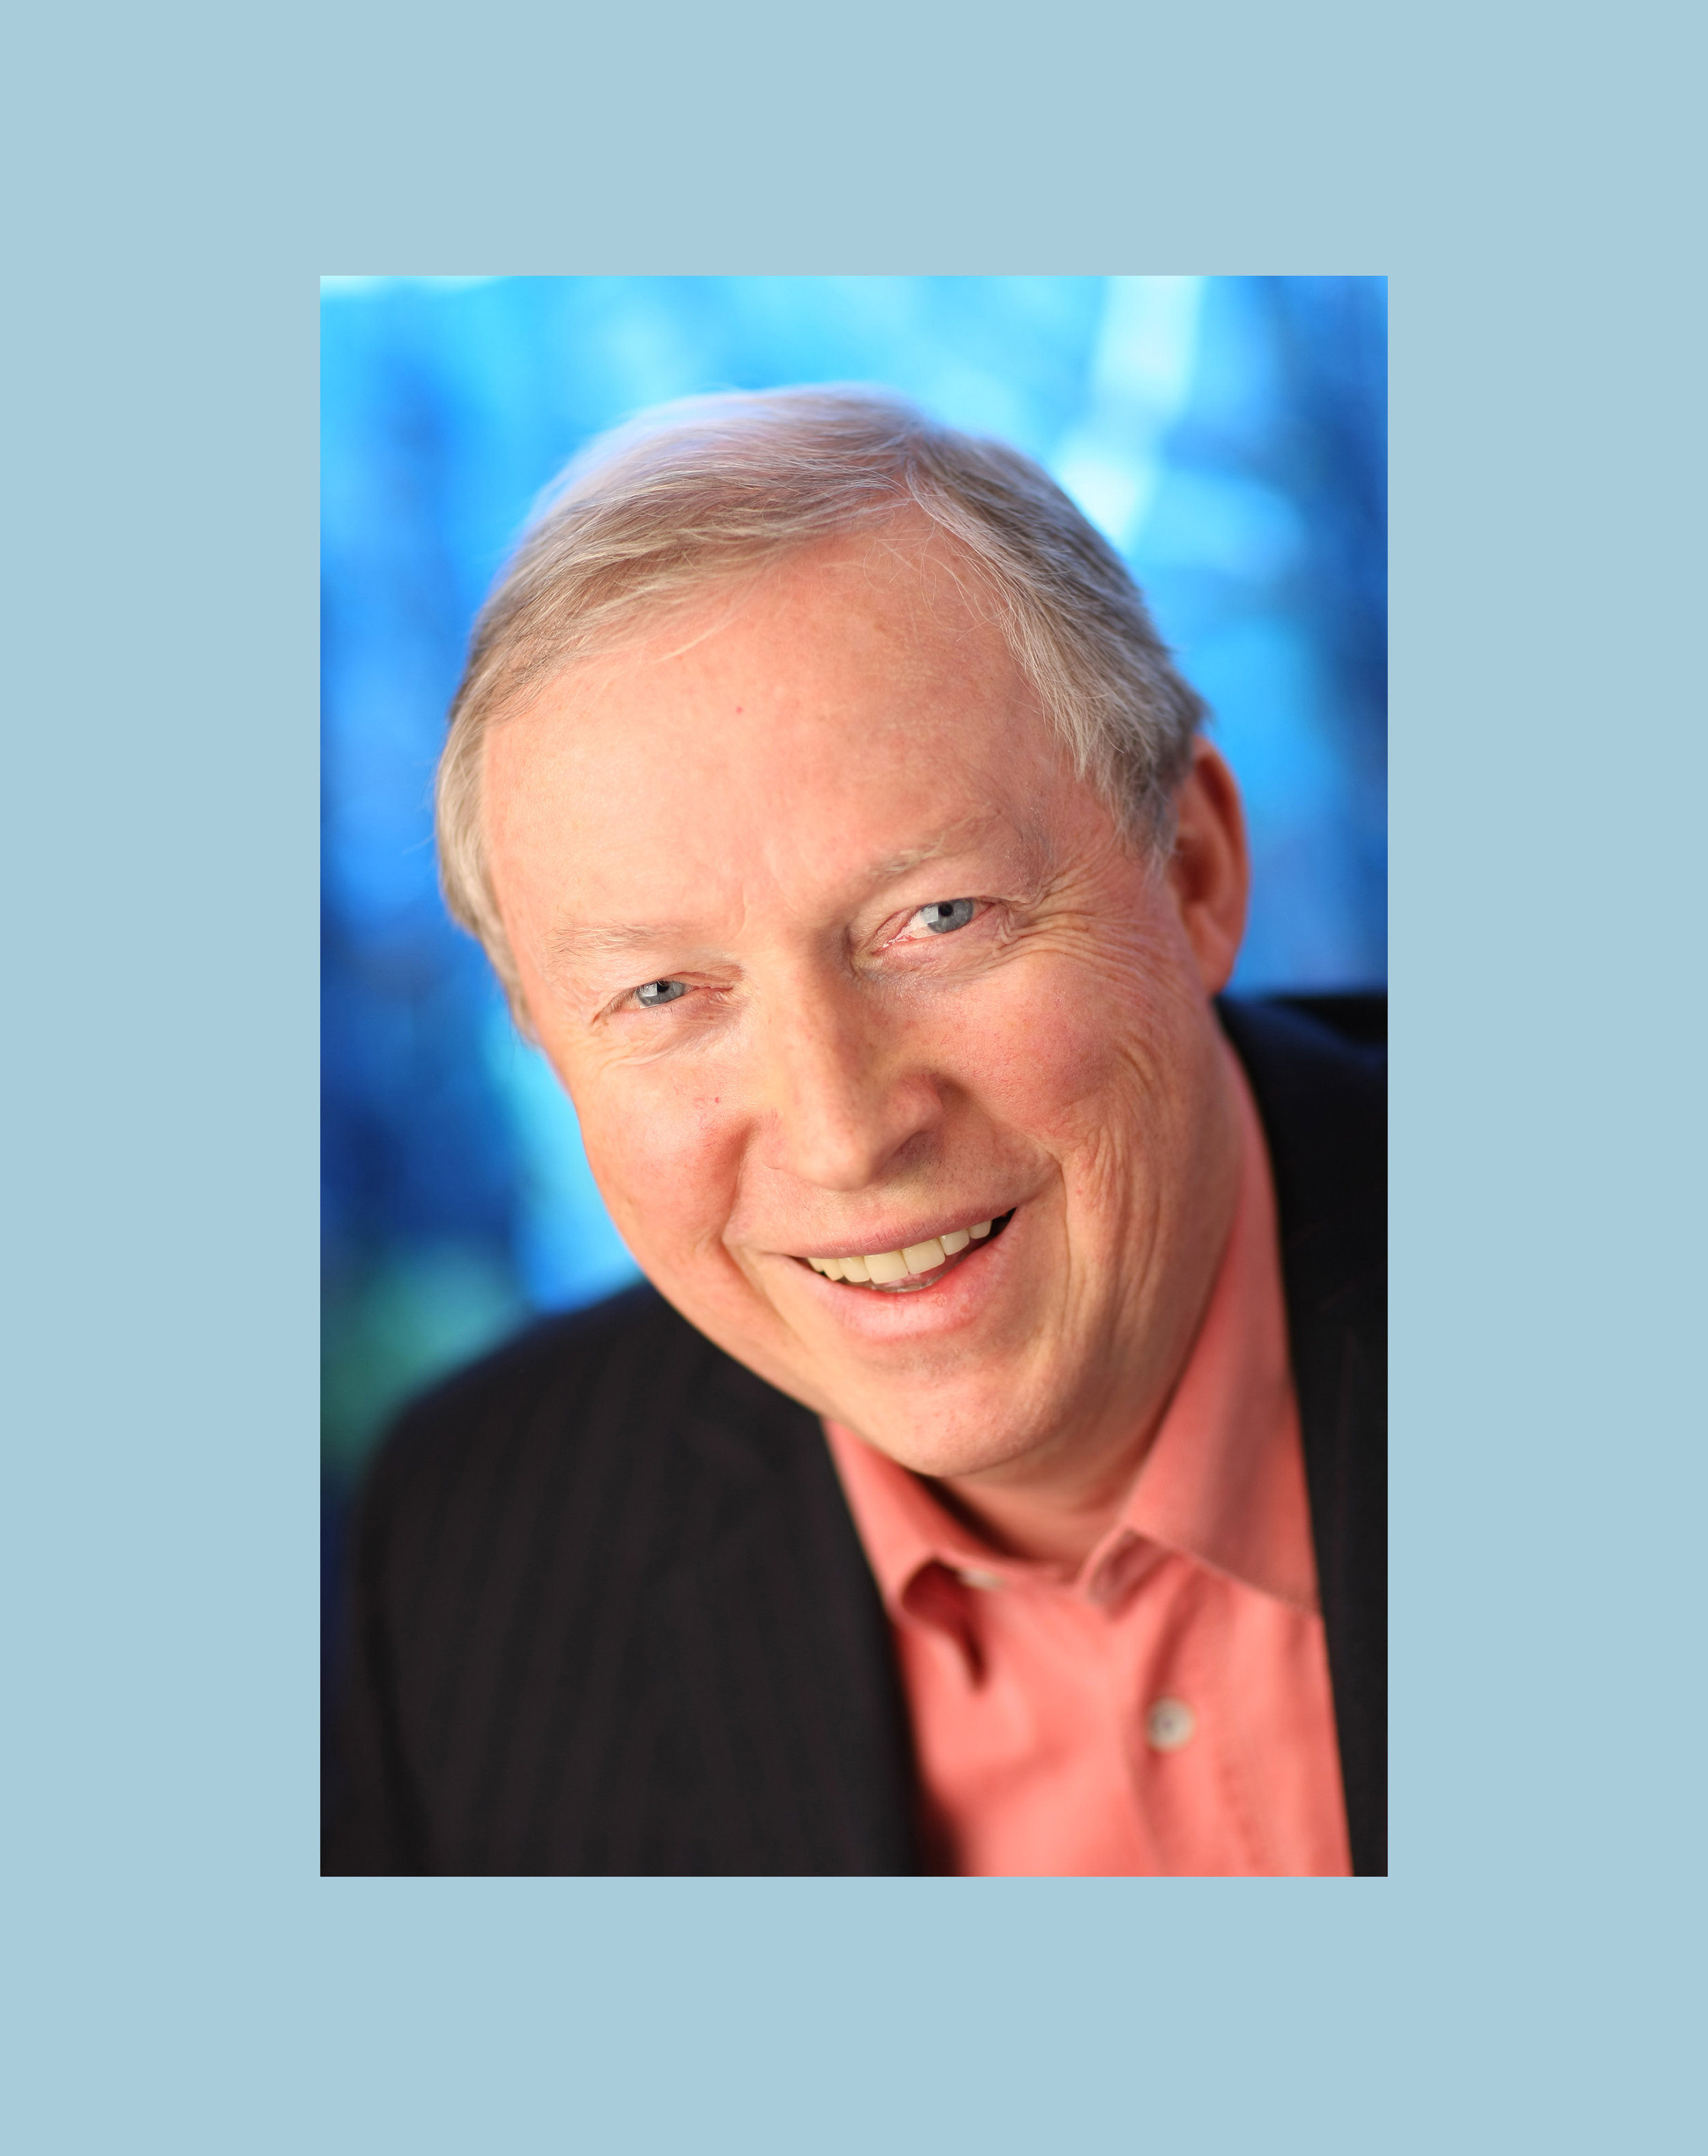 For over three decades, Jim Hoggan has developed a reputation as the guy to call in a public relations crisis. - Highly sought-after by the media for his expert commentary, insight and advice, Jim has navigated executives and high profile clients through the glare of TV cameras, social media and front page investigations resulting in awards including the industry's prestigious Silver Anvil for the best crisis management campaign in North America as well as awards for ethics in public relations.read more→